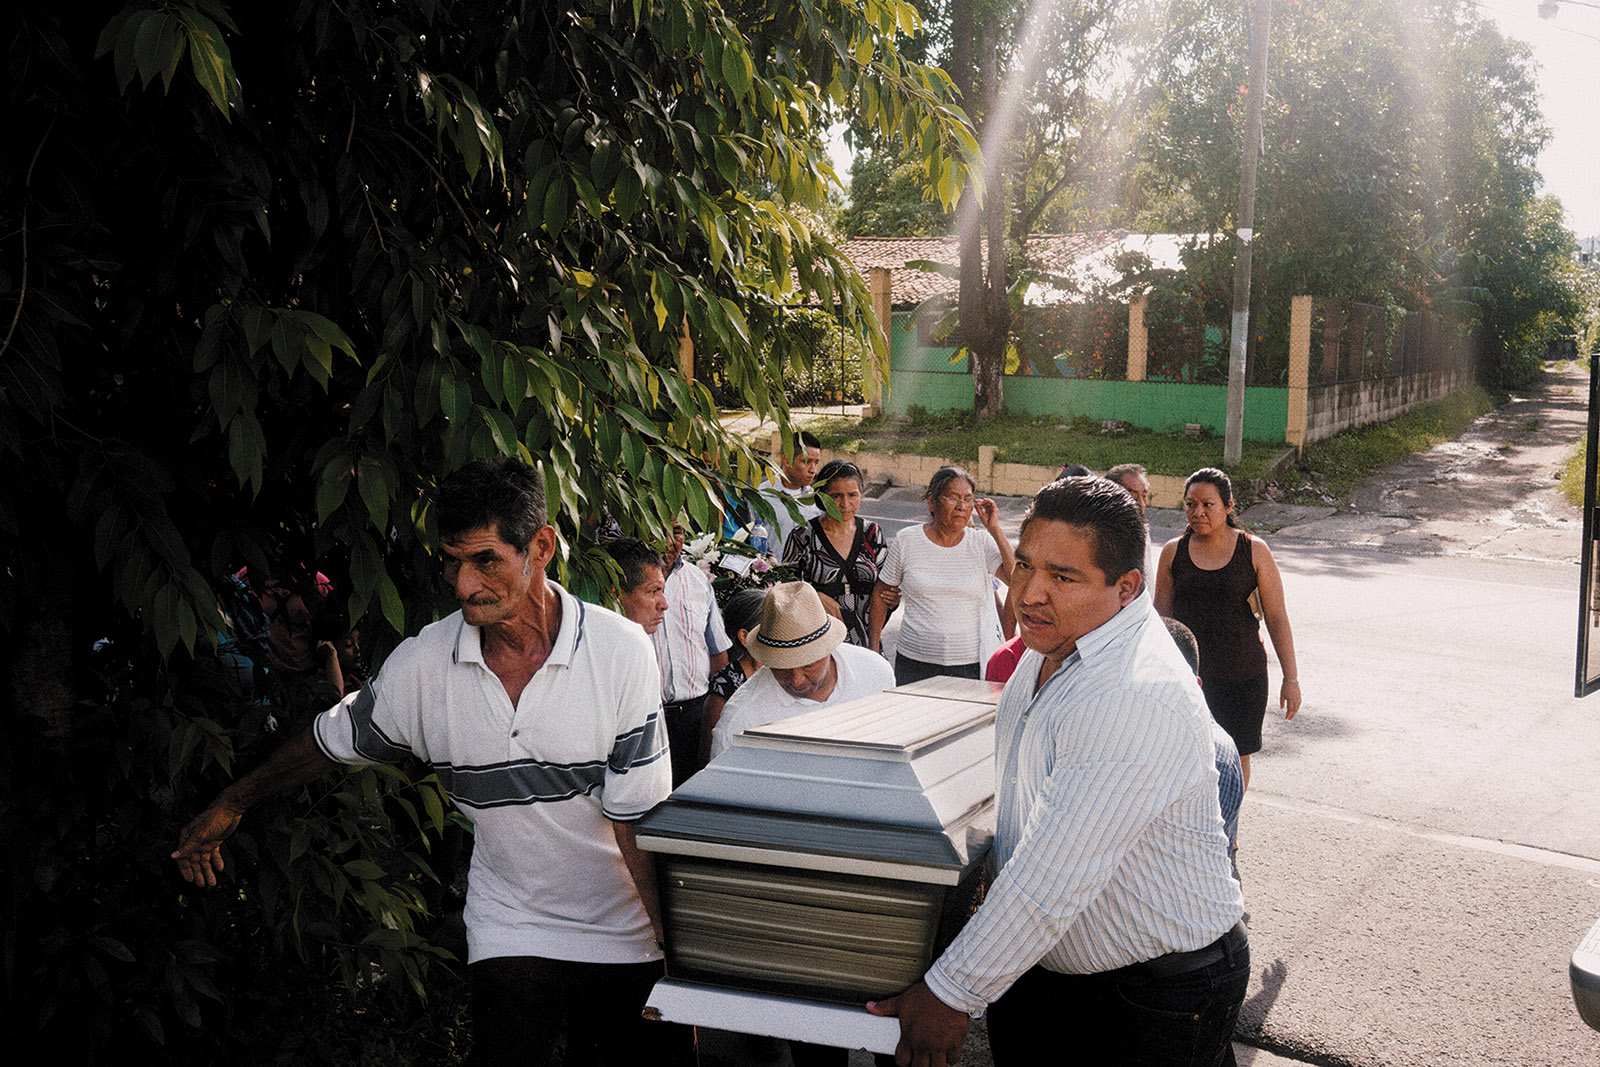 Friends and family at the funeral of a bus driver who was shot and killed during an encounter with a gang member as he was returning from his daily route, Apopa, El Salvador, September 2016